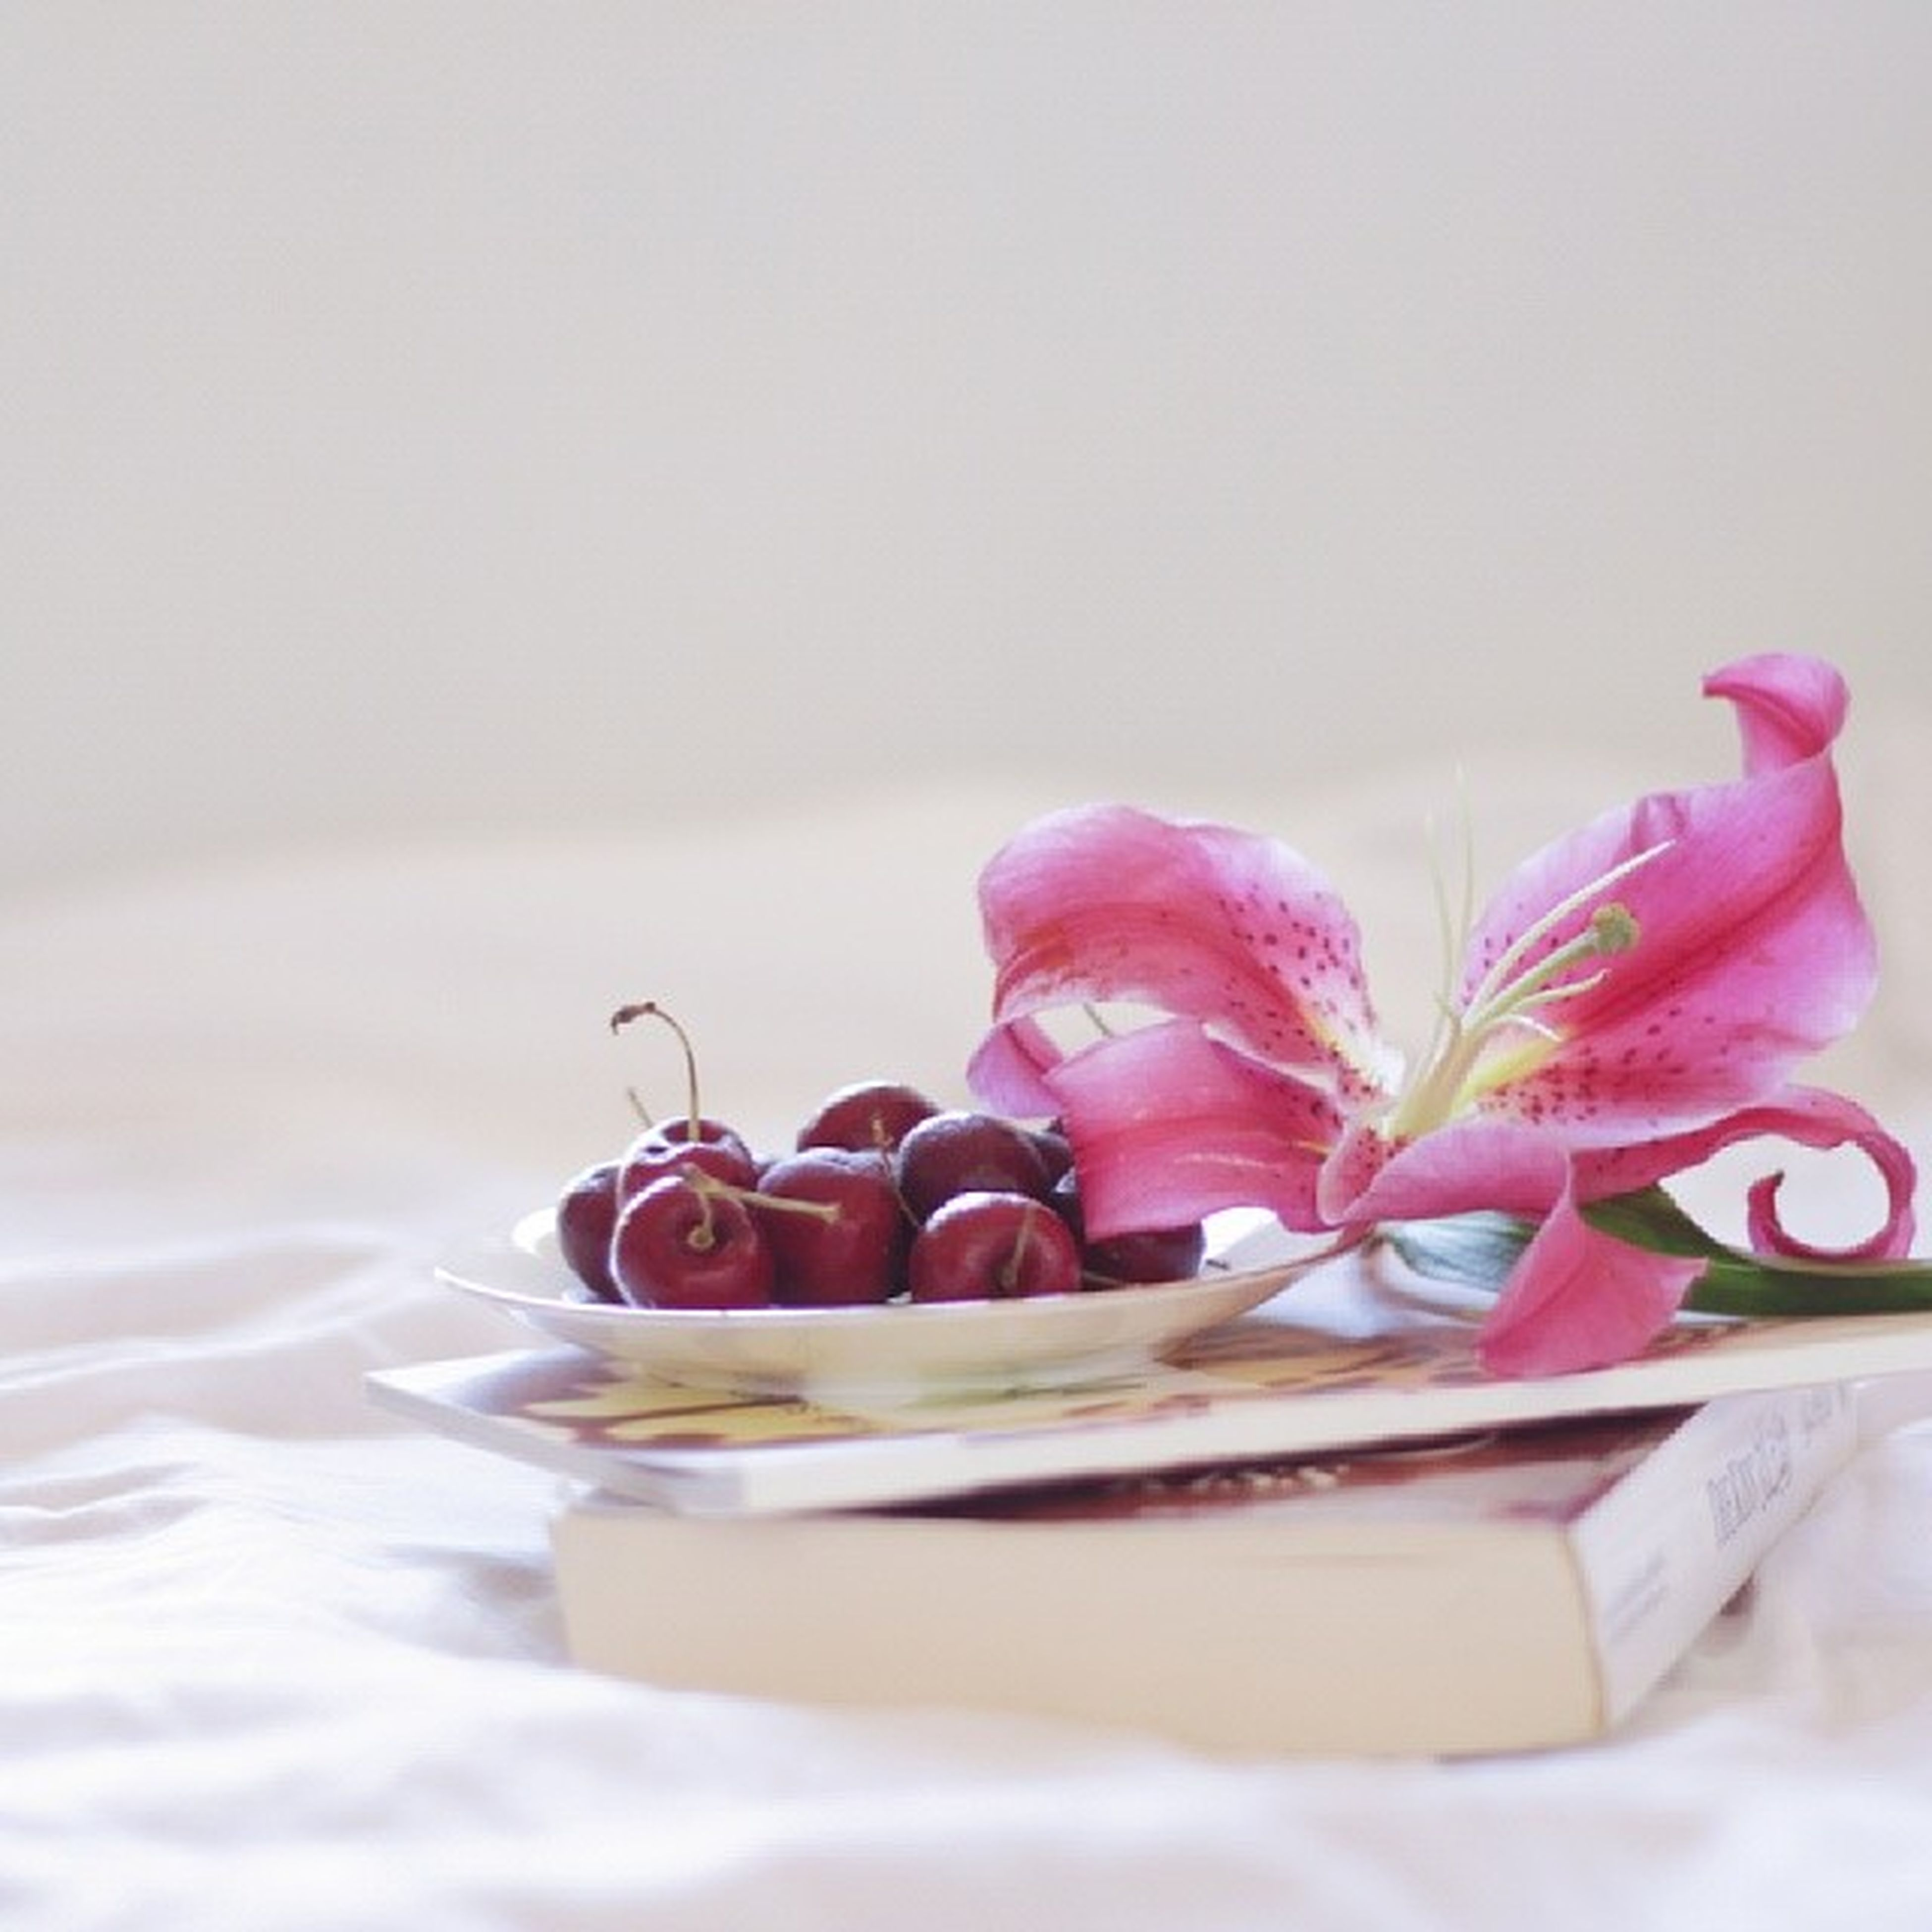 food and drink, food, freshness, still life, indoors, sweet food, table, indulgence, healthy eating, dessert, ready-to-eat, close-up, fruit, plate, selective focus, temptation, bowl, white background, focus on foreground